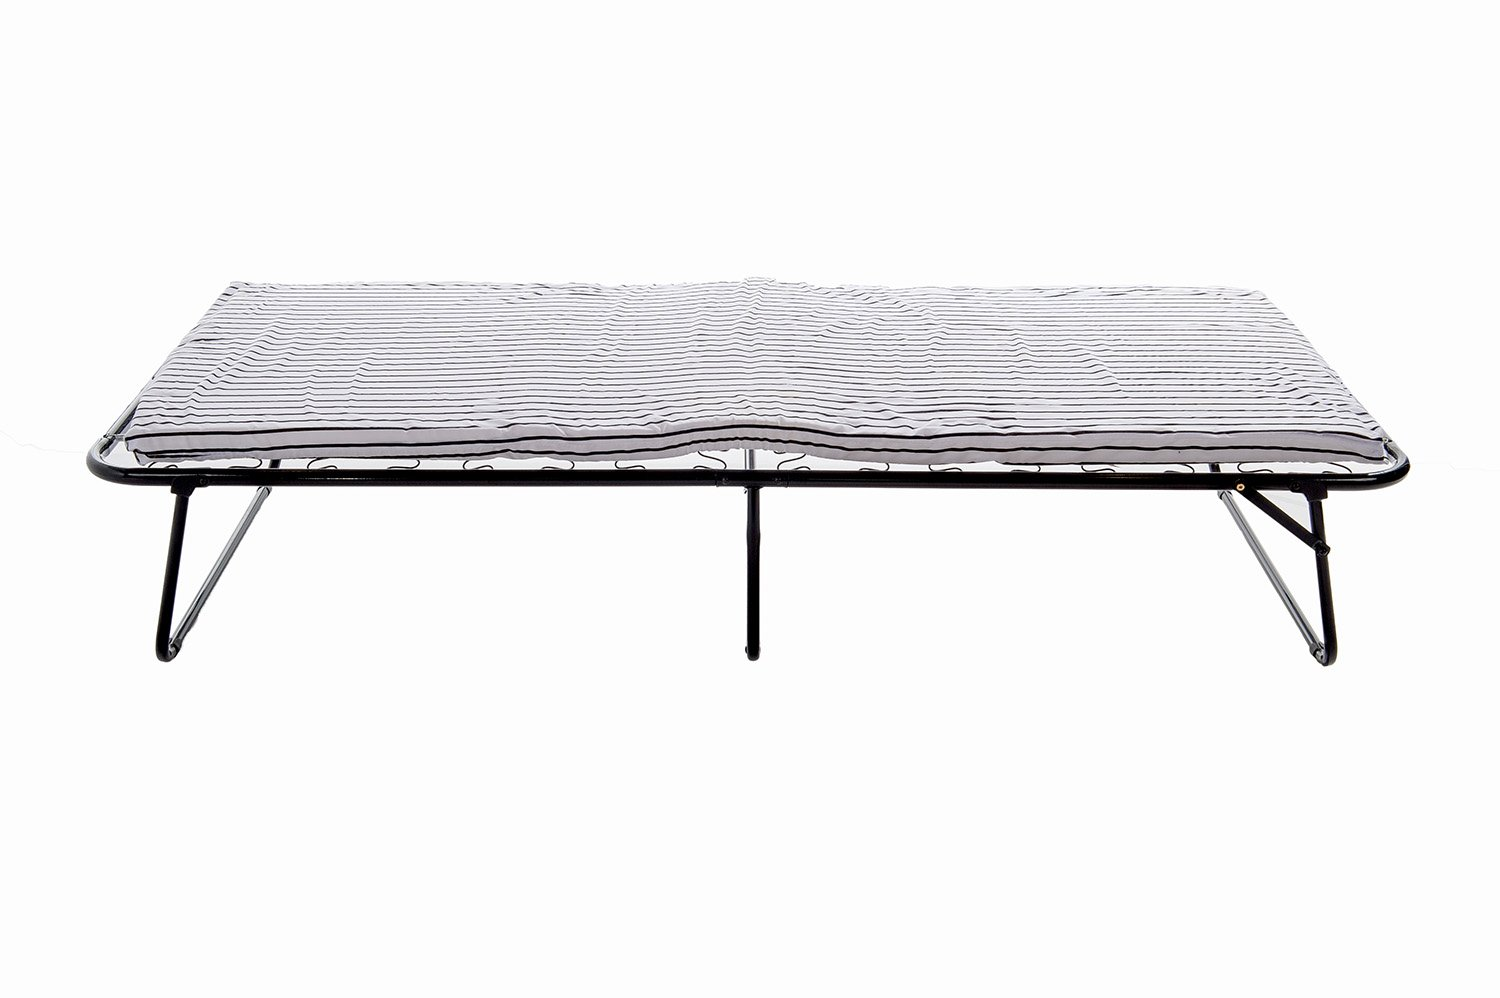 Home Source Industries, 223 Cot Bed, Folding Bed with Mattress, Black and White, L 75'' W 31'' x H 13''